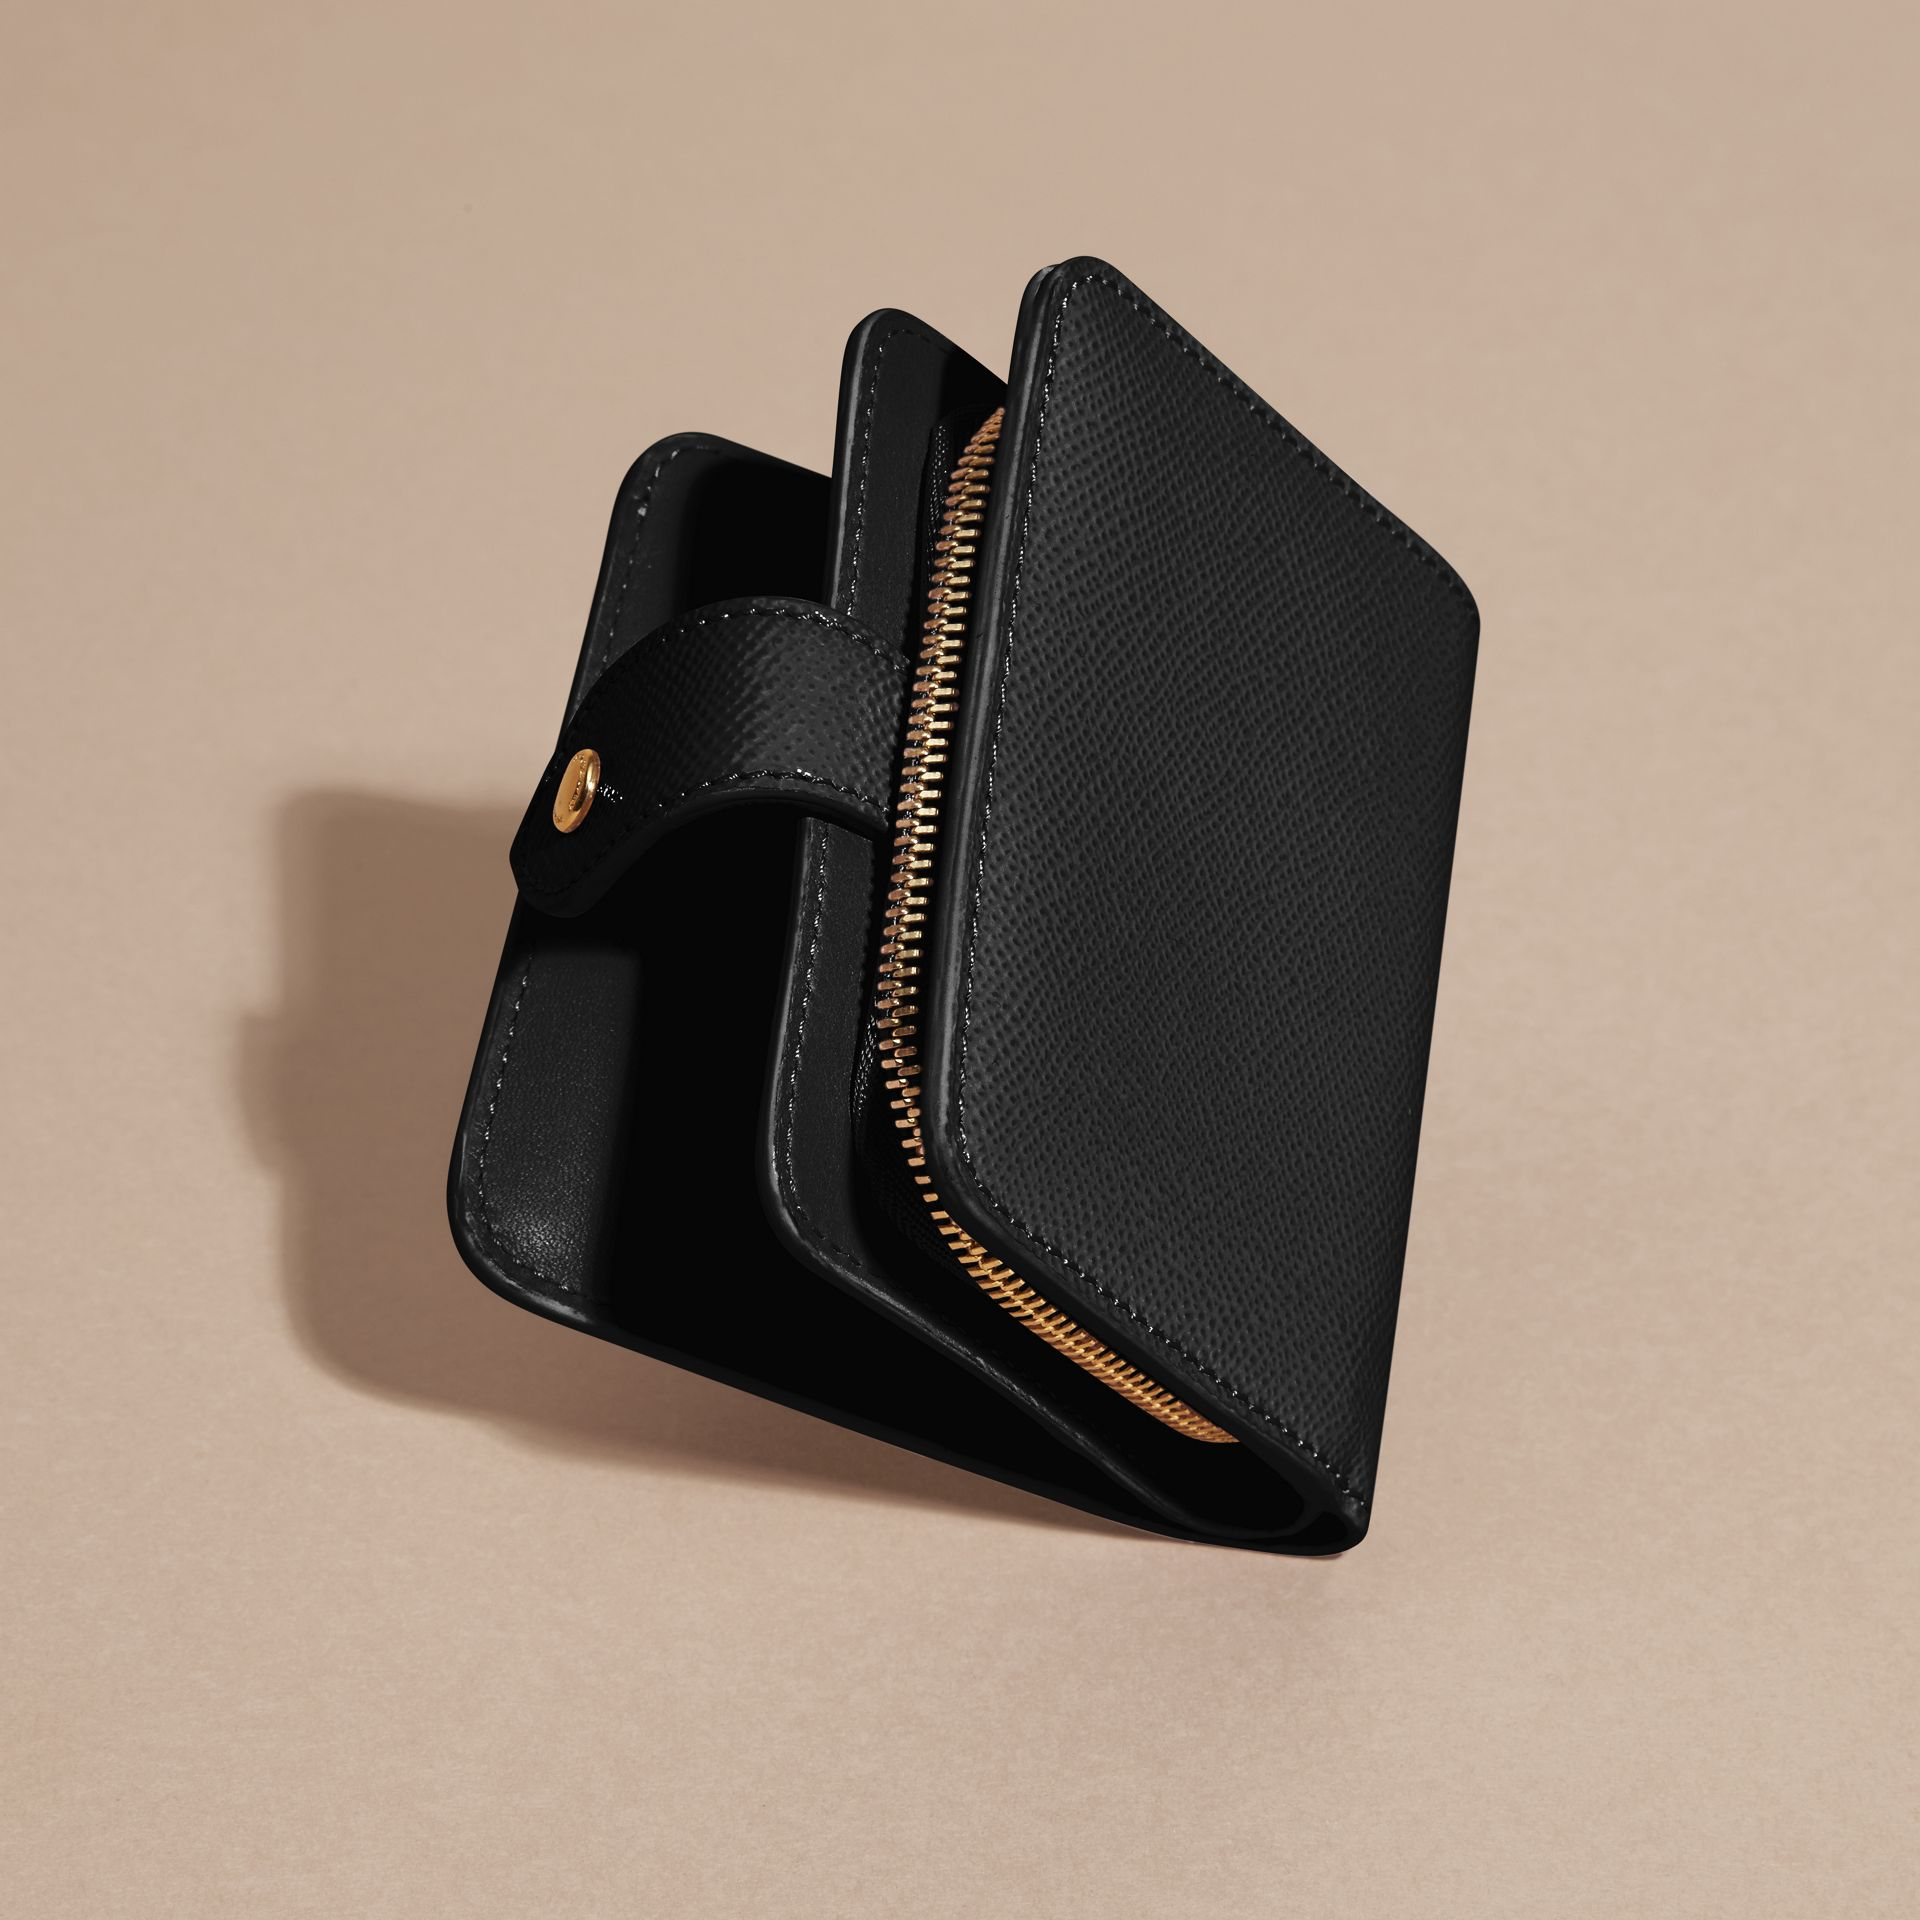 Patent London Leather Wallet in Black - gallery image 4